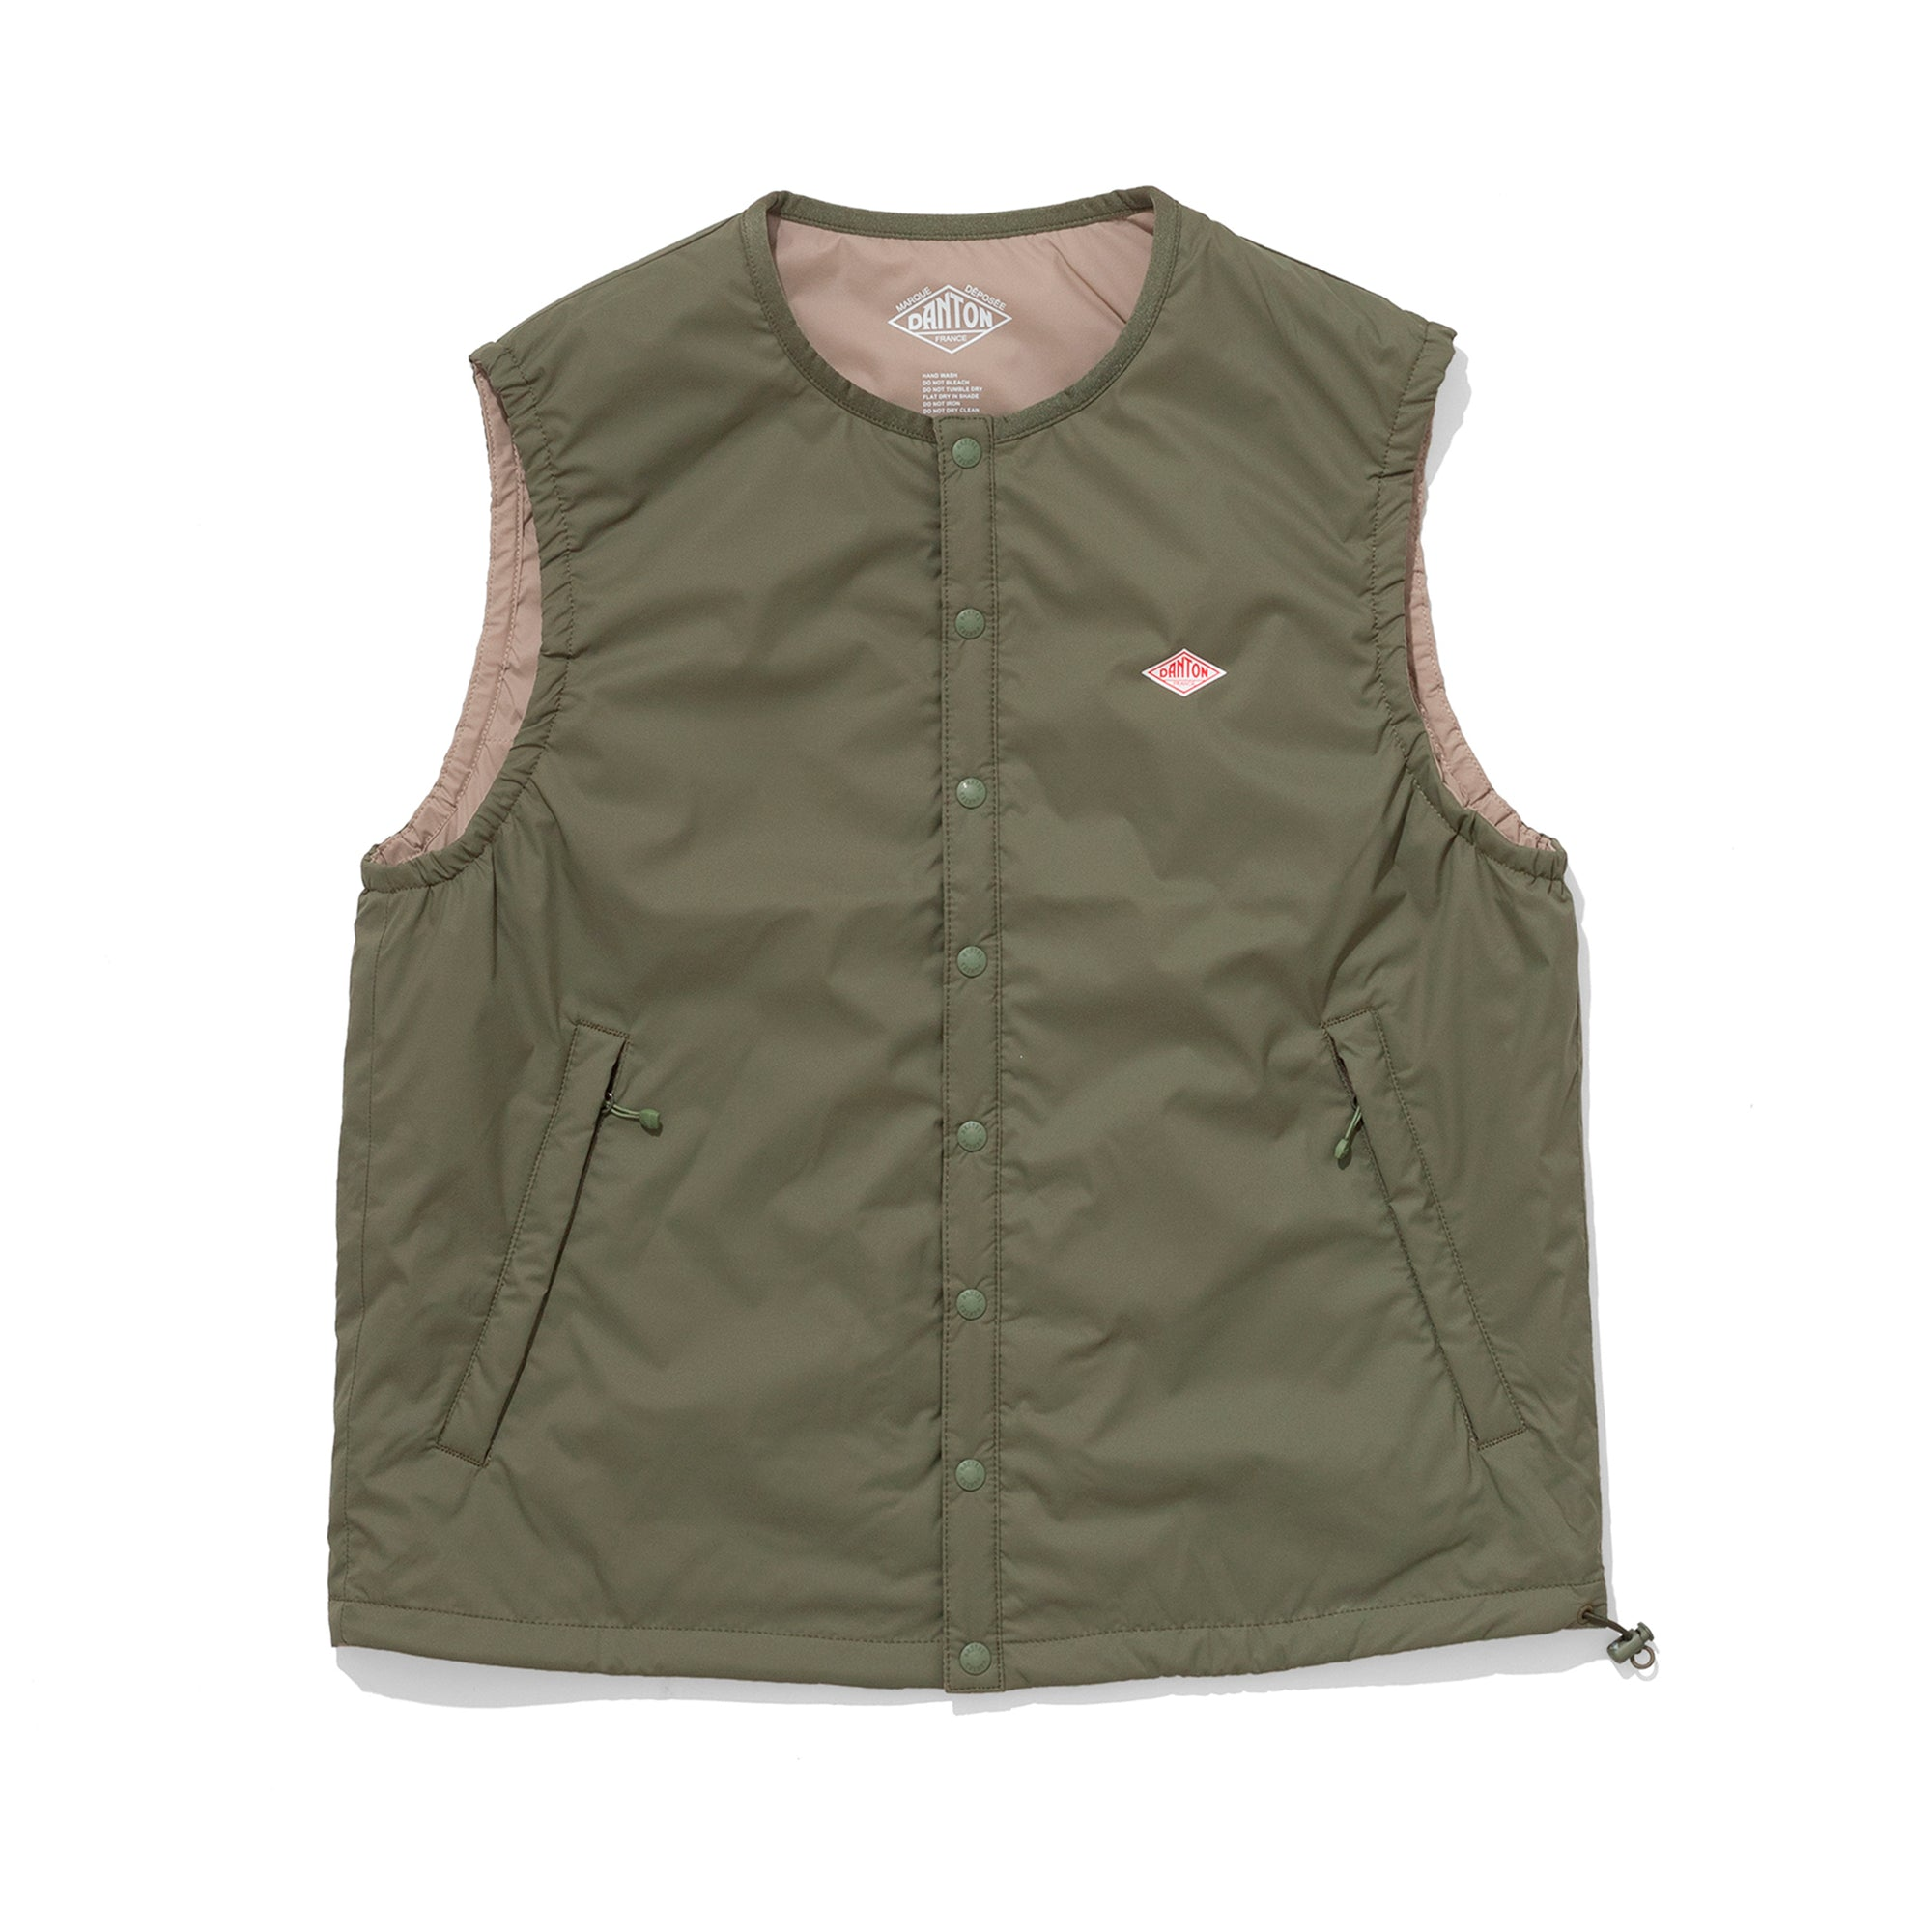 Danton Womens Insulated Vest: Olive Green - The Union Project